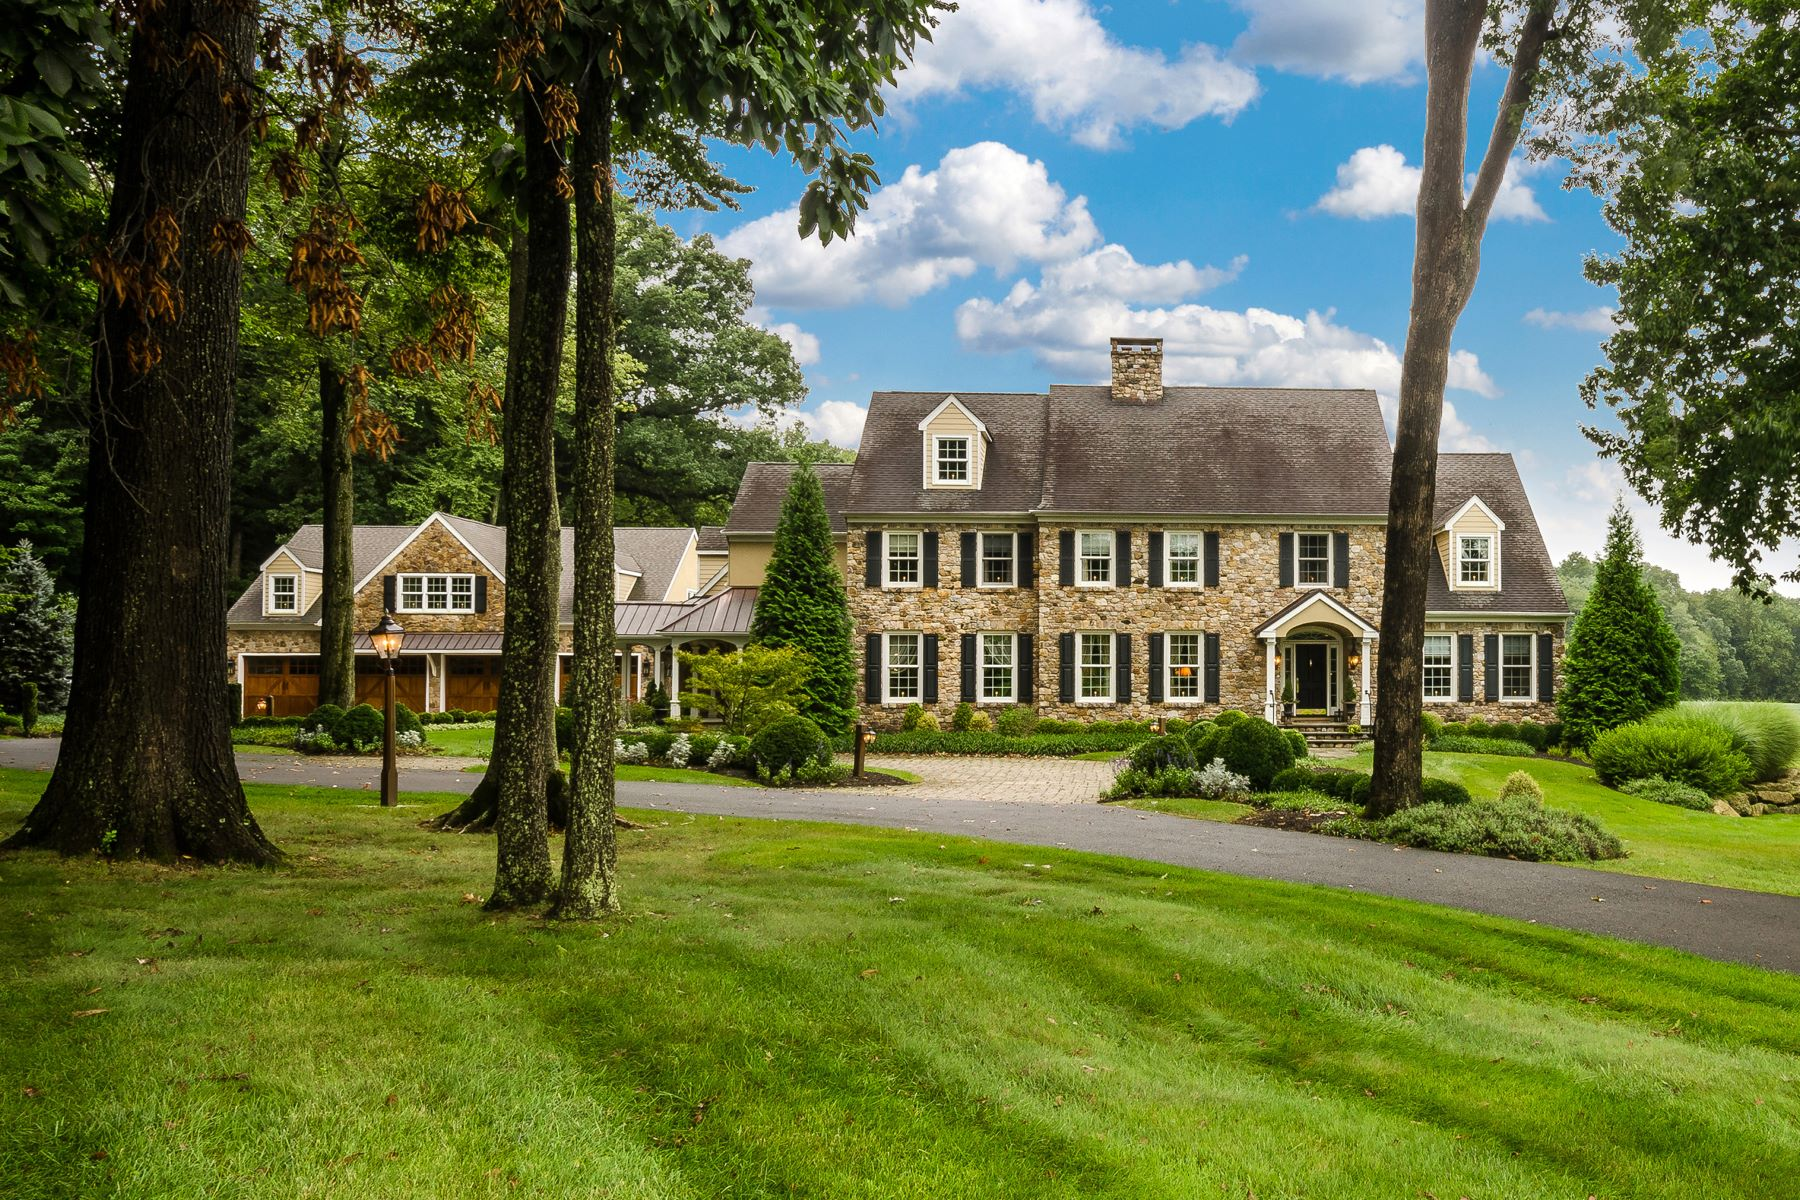 Single Family Home for Sale at 5548 Indian Ridge Rd Doylestown, Pennsylvania 18902 United States